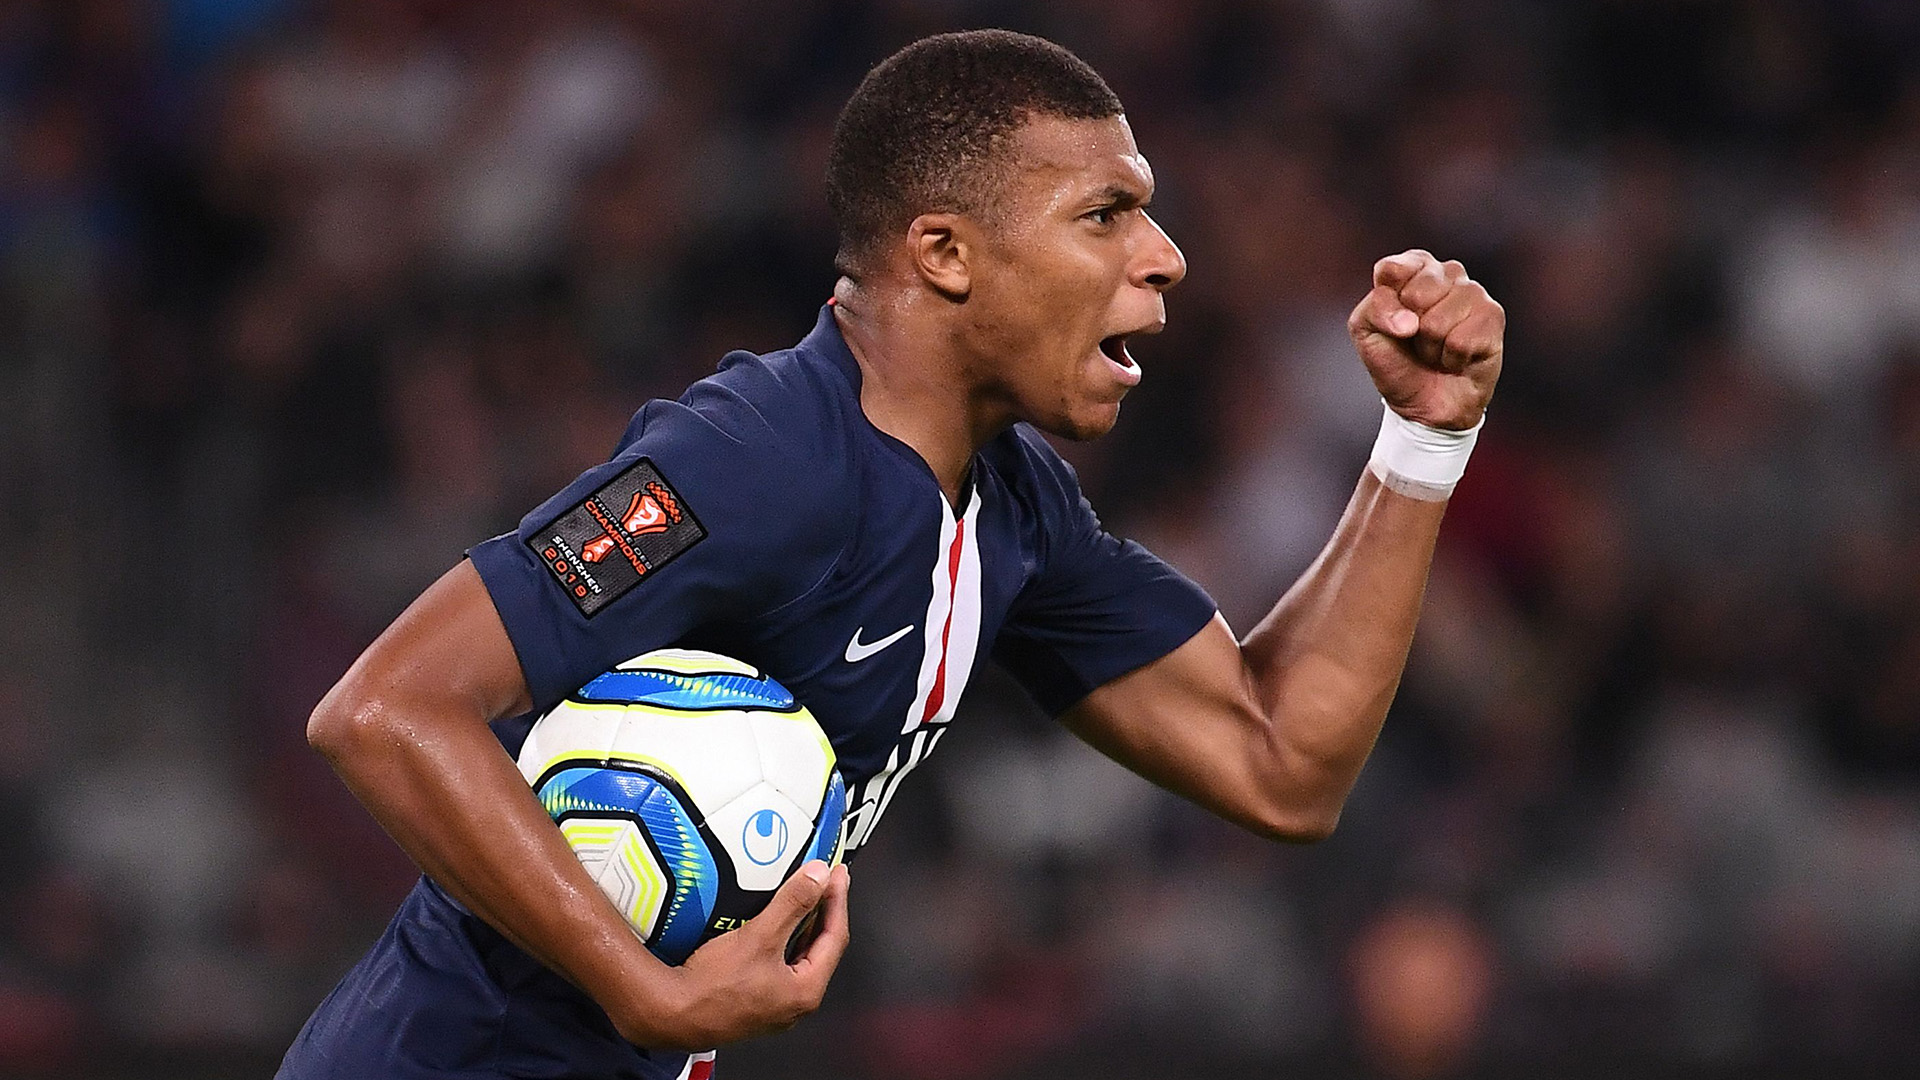 'Phenomenon' Mbappe will be the best in the world - Fabregas